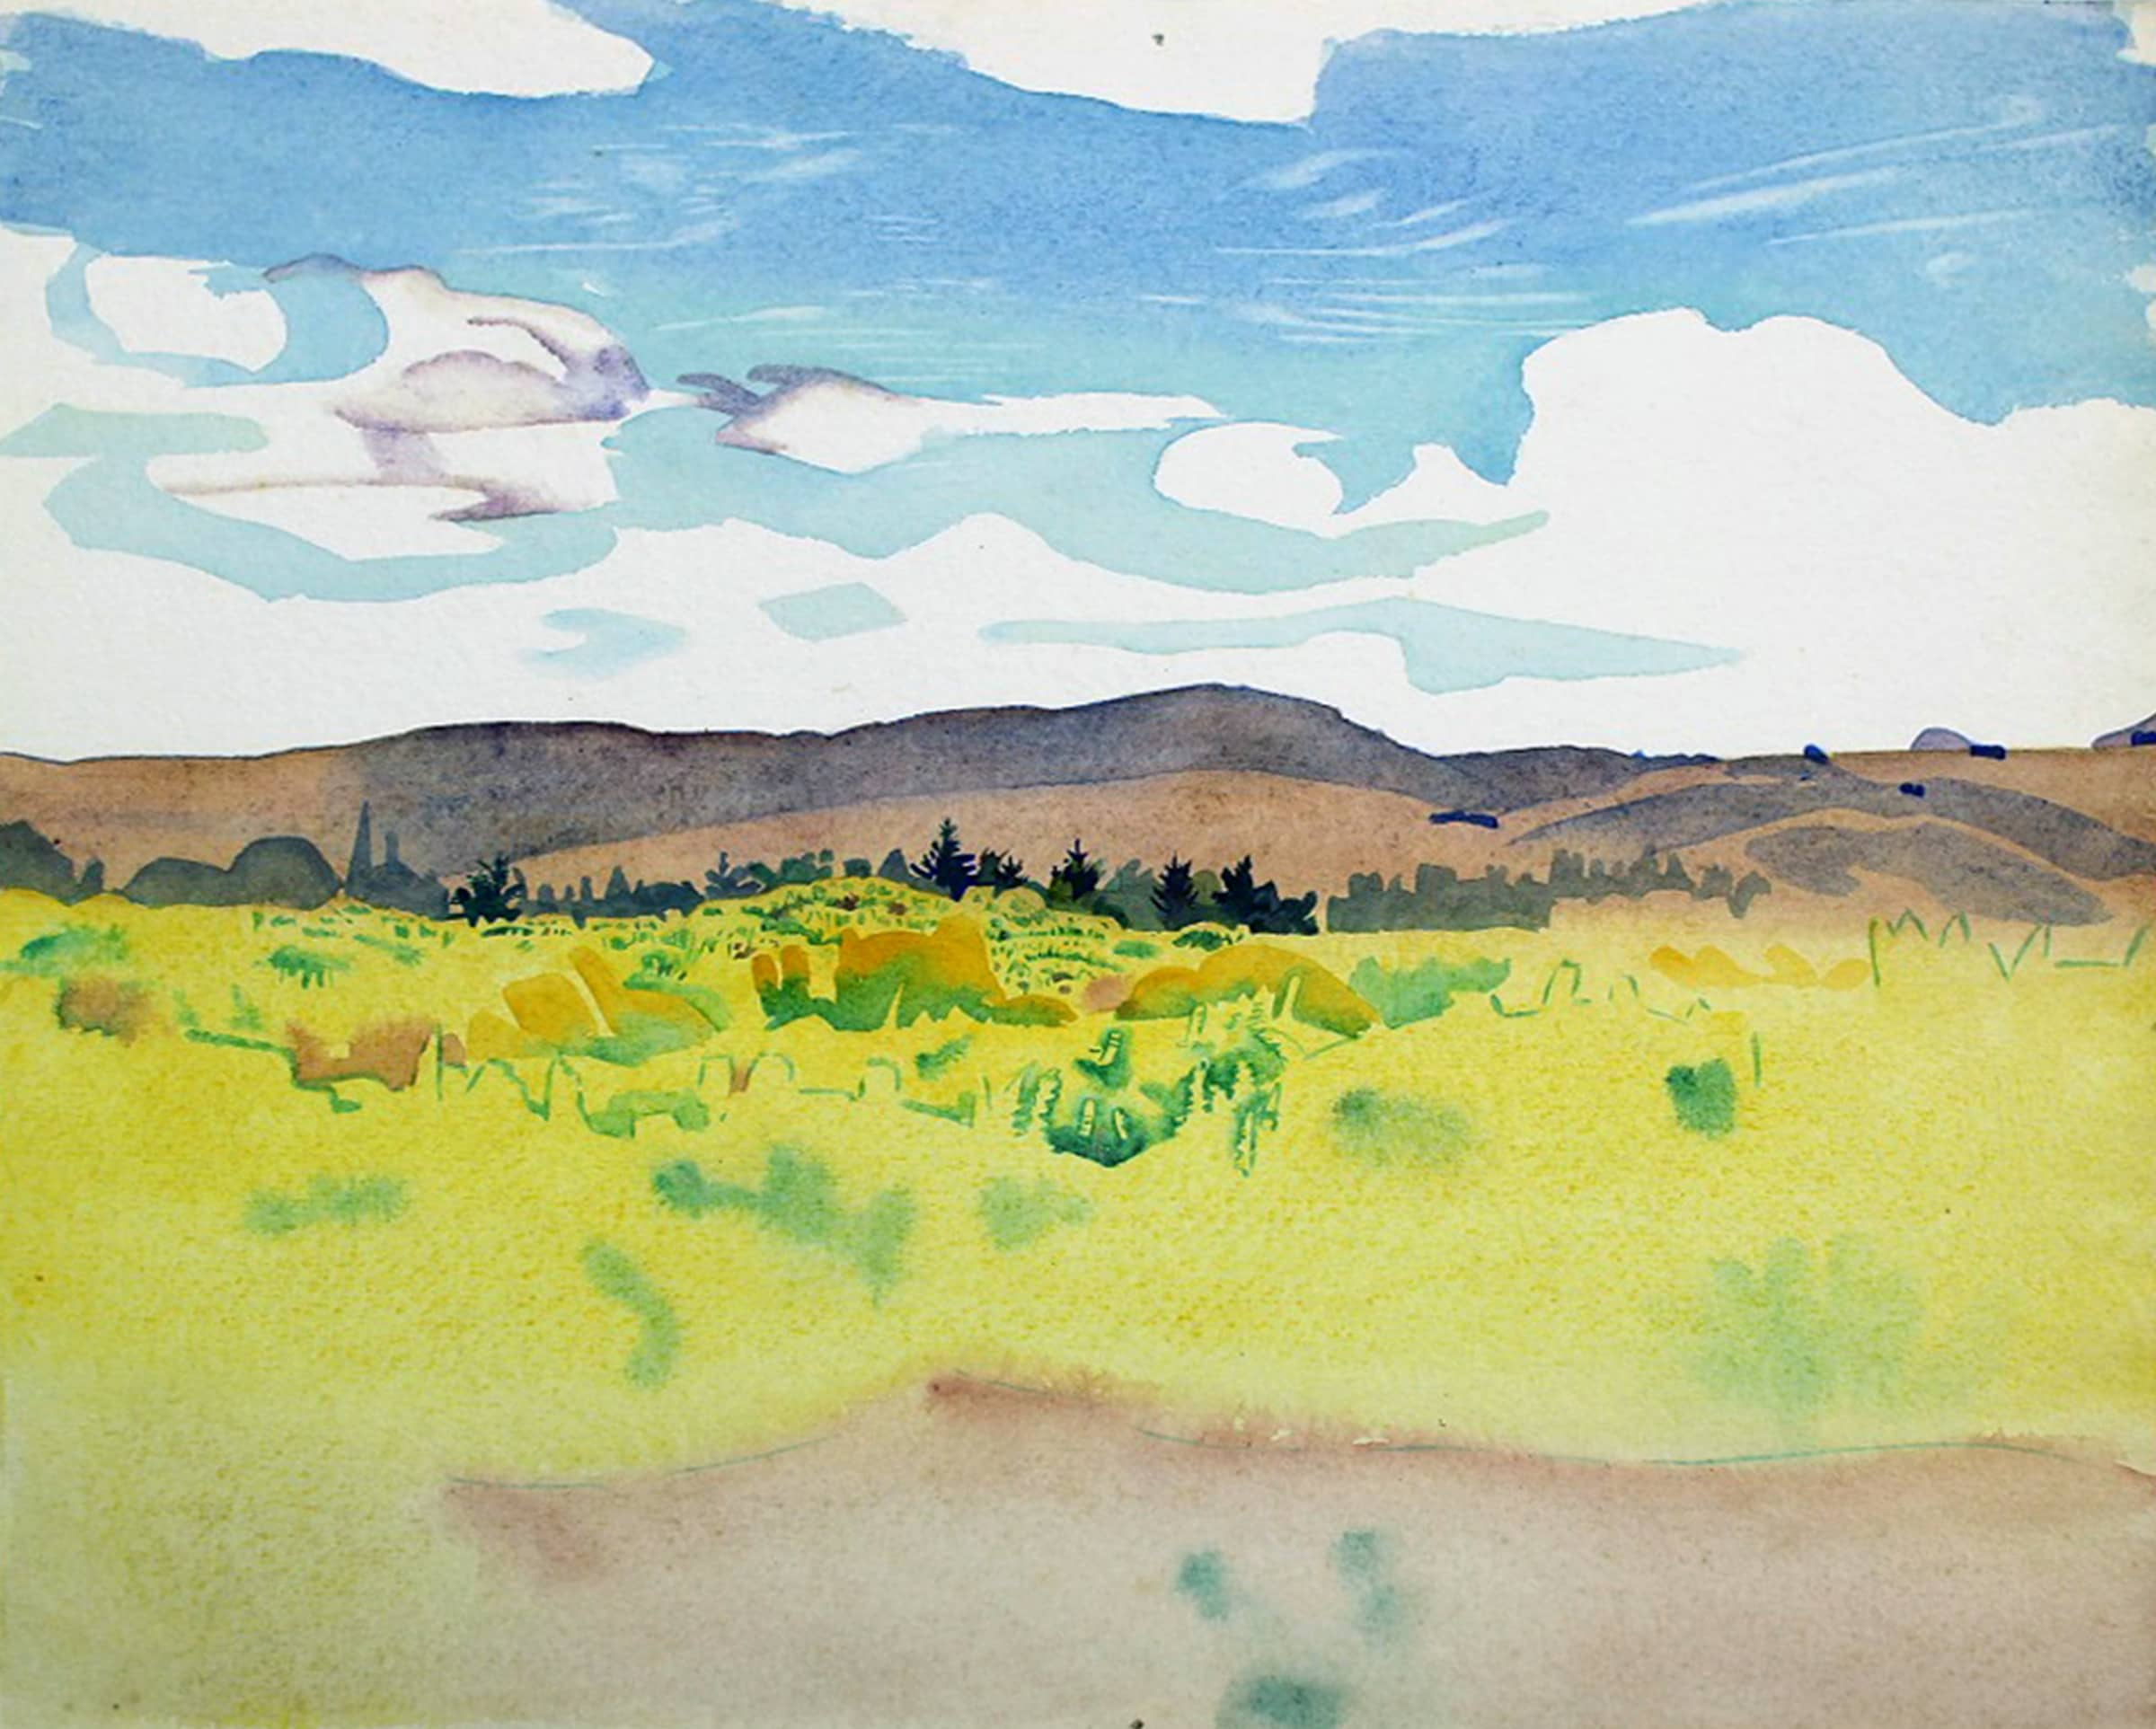 """<span class=""""link fancybox-details-link""""><a href=""""/artists/70-rita-angus/works/6383-rita-angus-landscape-northland-1953-54/"""">View Detail Page</a></span><div class=""""artist""""><strong>Rita Angus</strong></div> <div class=""""title""""><em>Landscape (Northland)</em>, 1953-54</div> <div class=""""medium"""">Watercolour on paper</div> <div class=""""dimensions"""">10.4 x 11.4 in<br />26.3 x 29 cm</div>"""